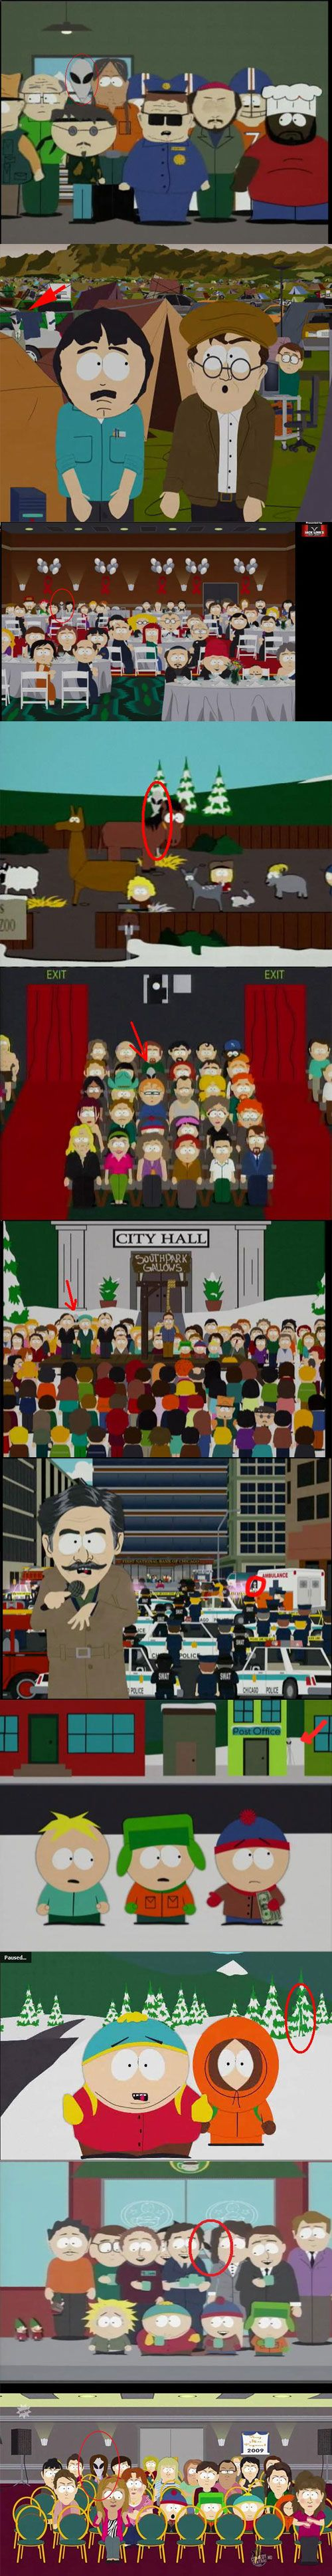 There is an alien on every episode of South Park